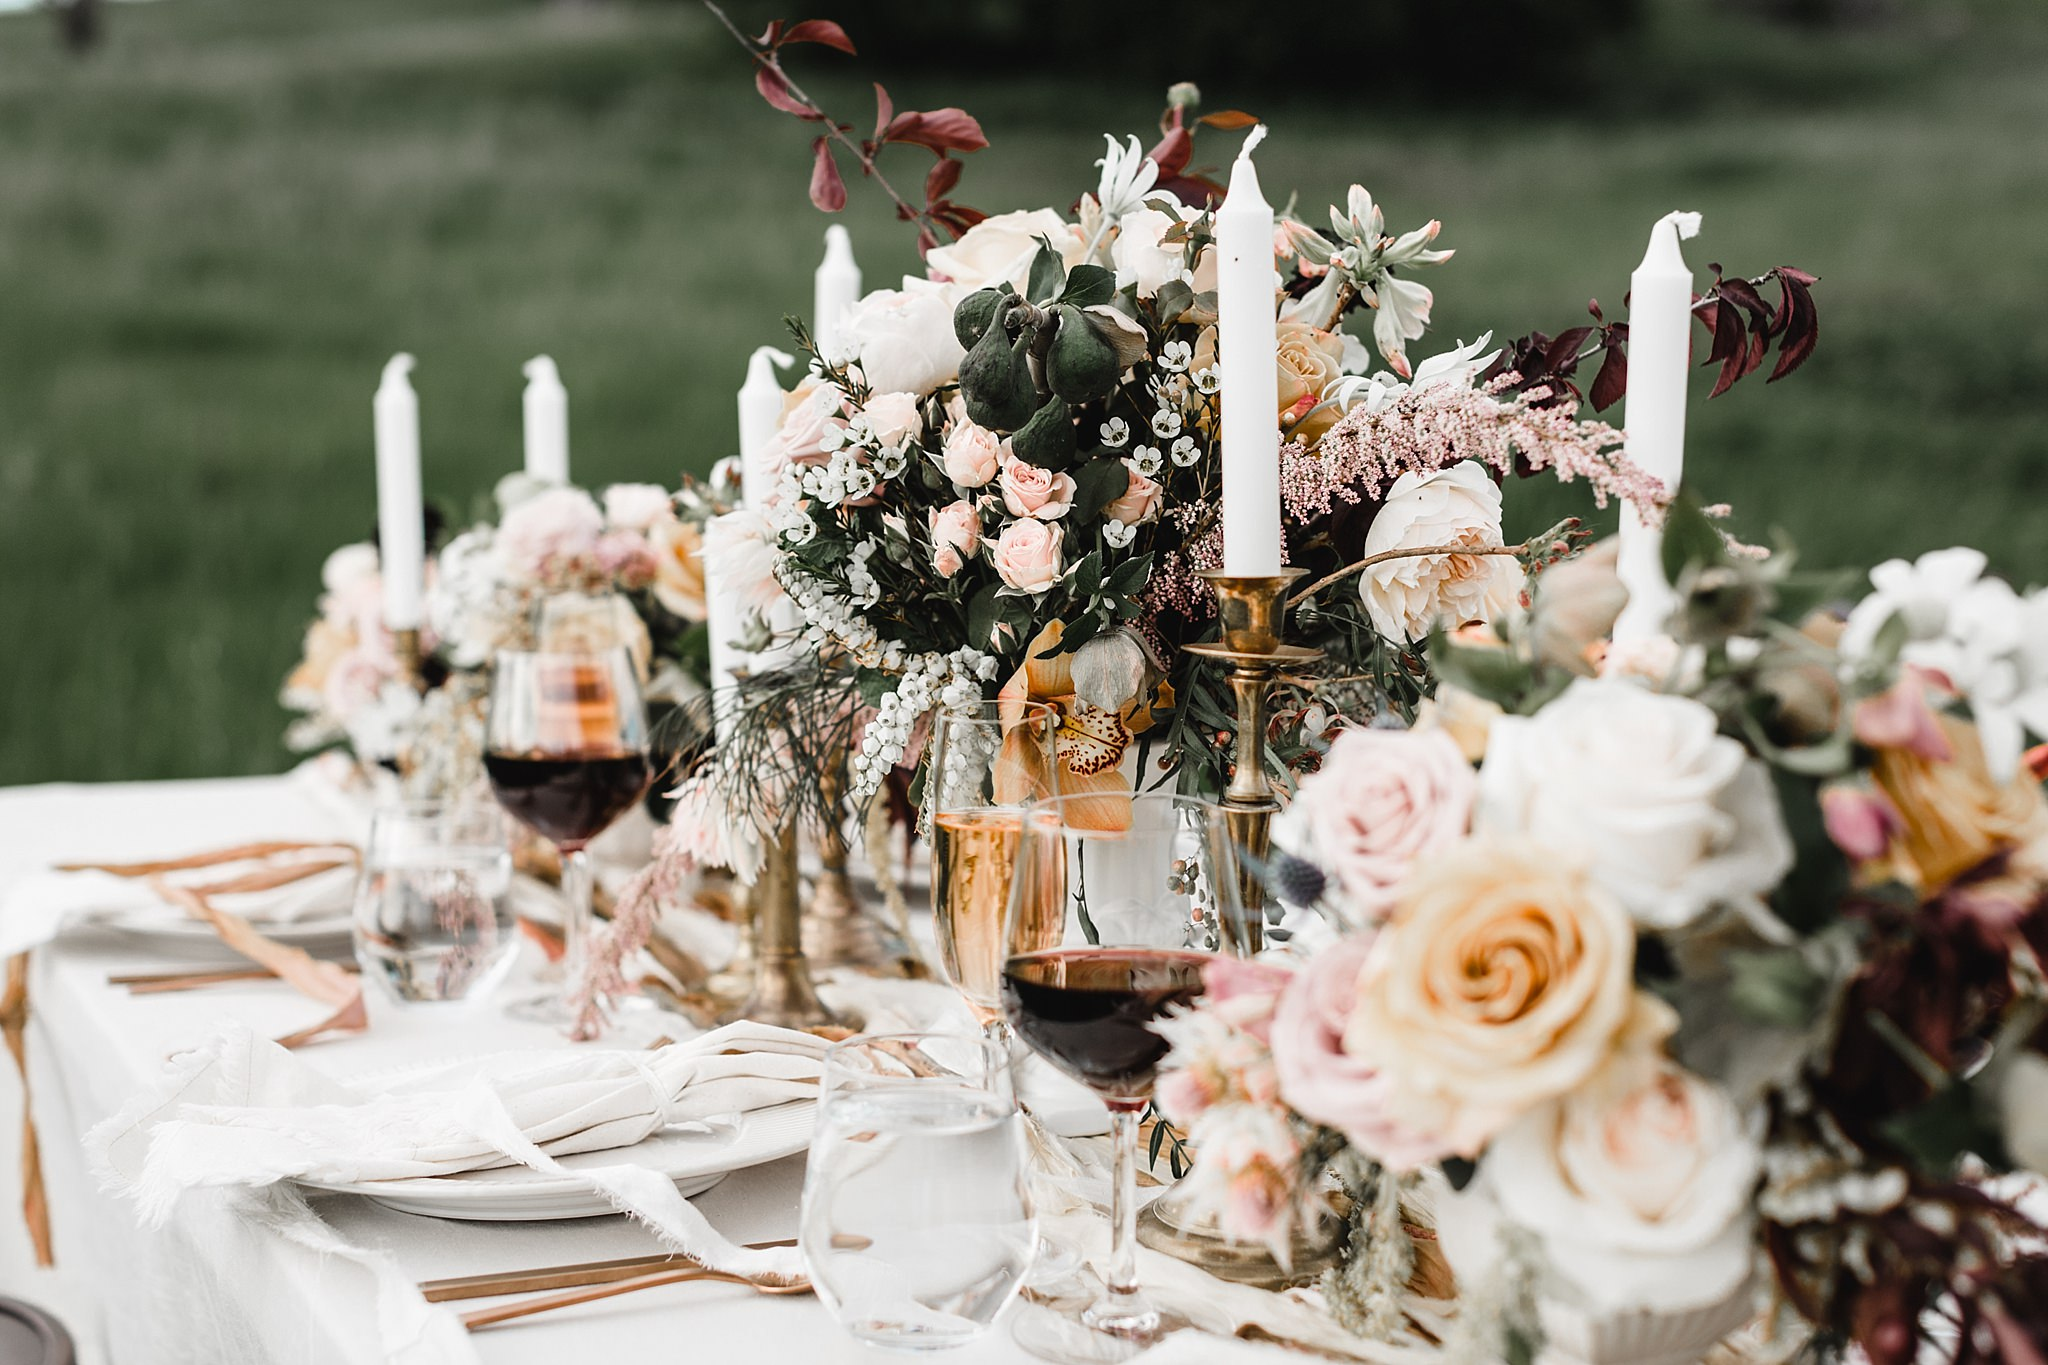 Poachers Pantry, Wedding Inspiration, Canberra Wedding Photographer, Bowral Wedding Photographer, Country Wedding, Rustic wedding bouquet, anna campbell bridal, wren and rabbit, Shae Estella Photo, Wedding photography